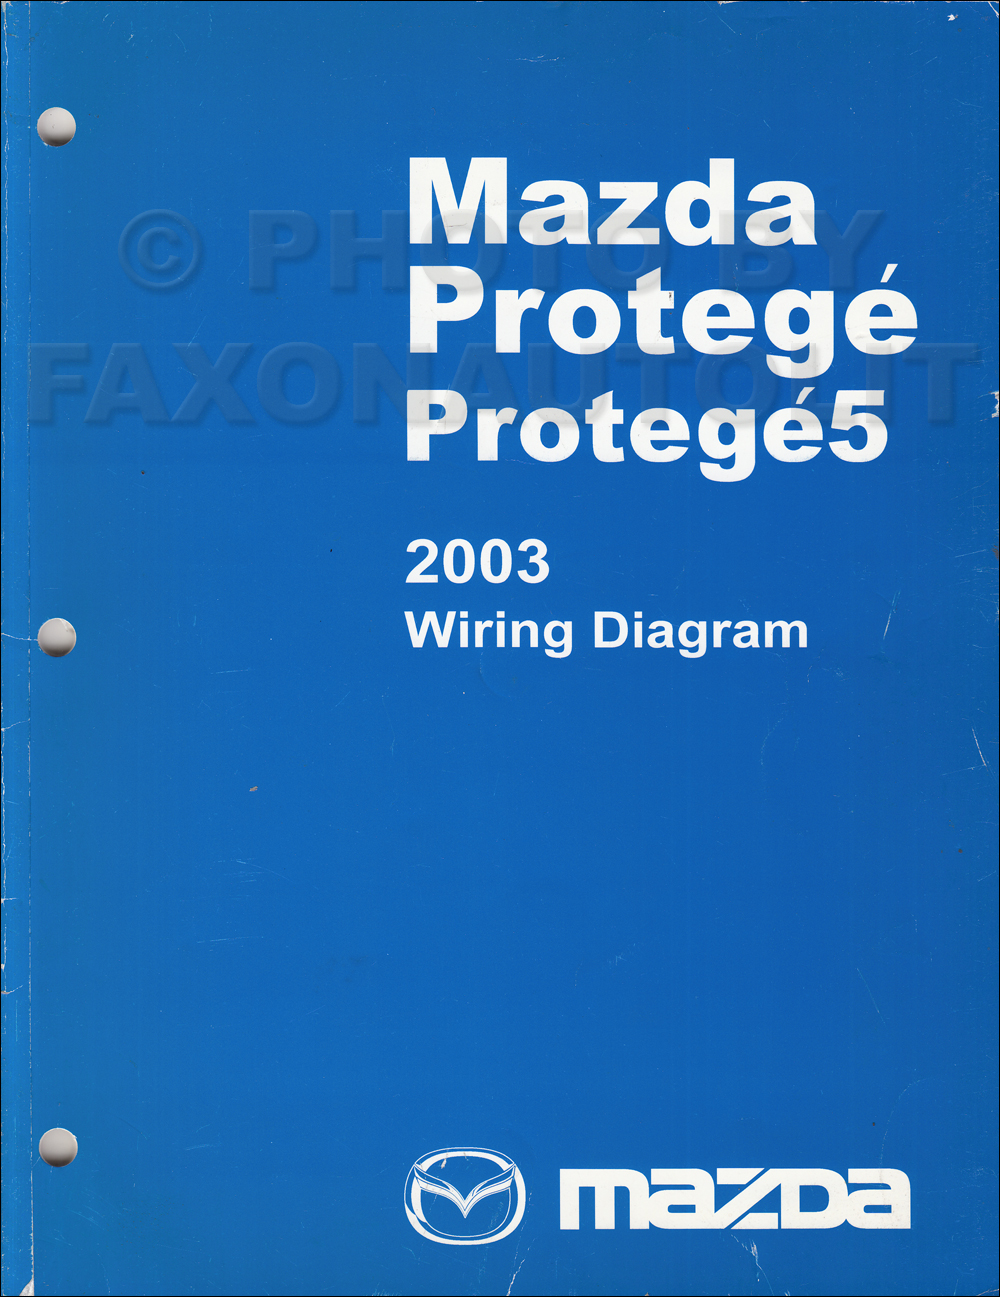 2003 Mazda Protege and Protege5 Wiring Diagram Manual Original